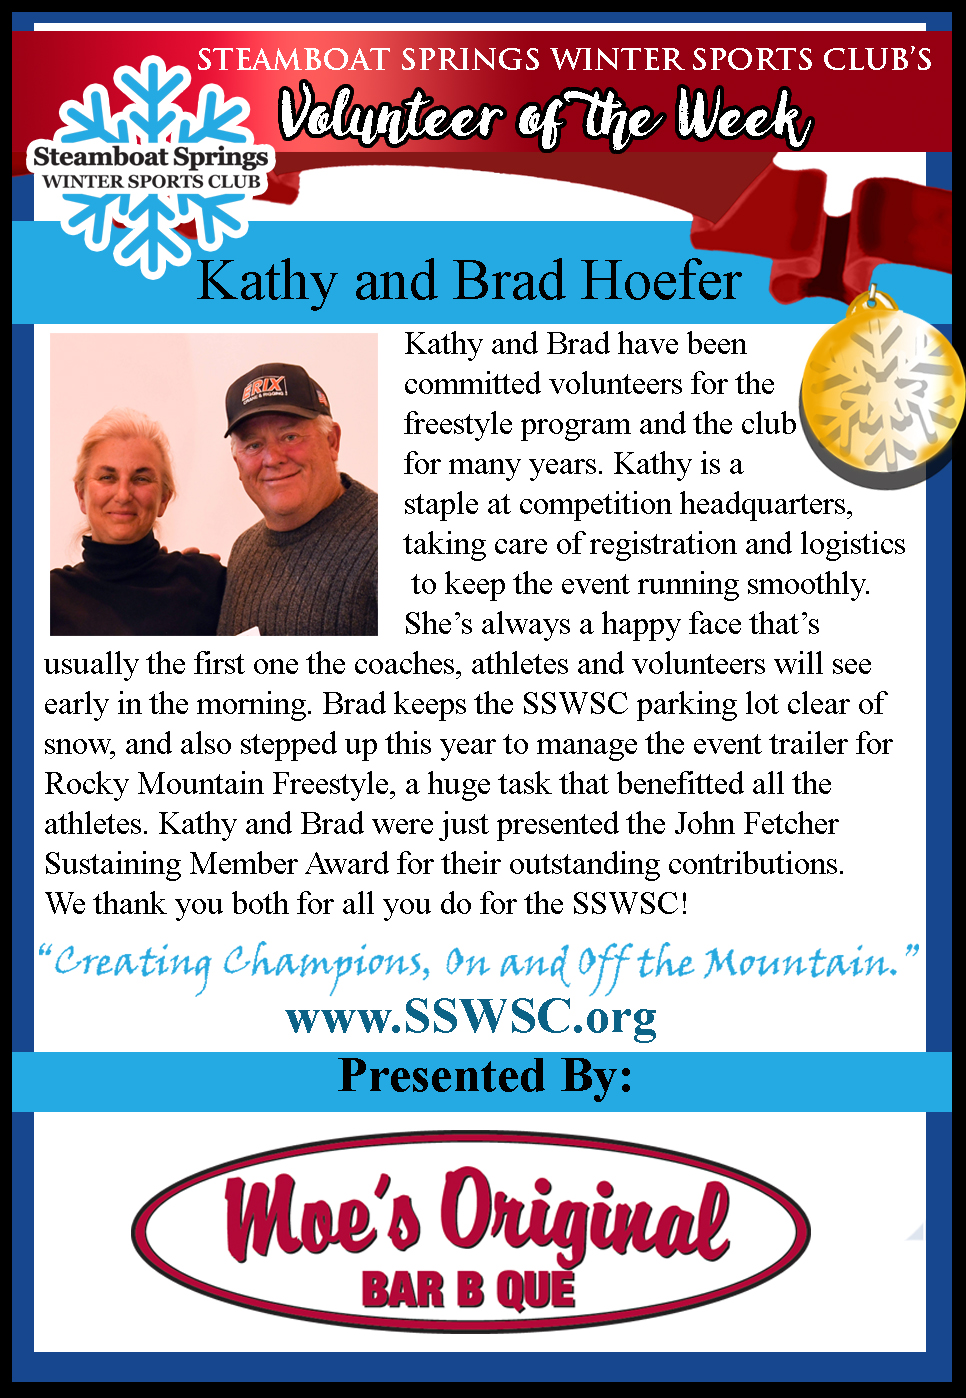 Volunteer of the Week: Kathy and Brad Hoefer